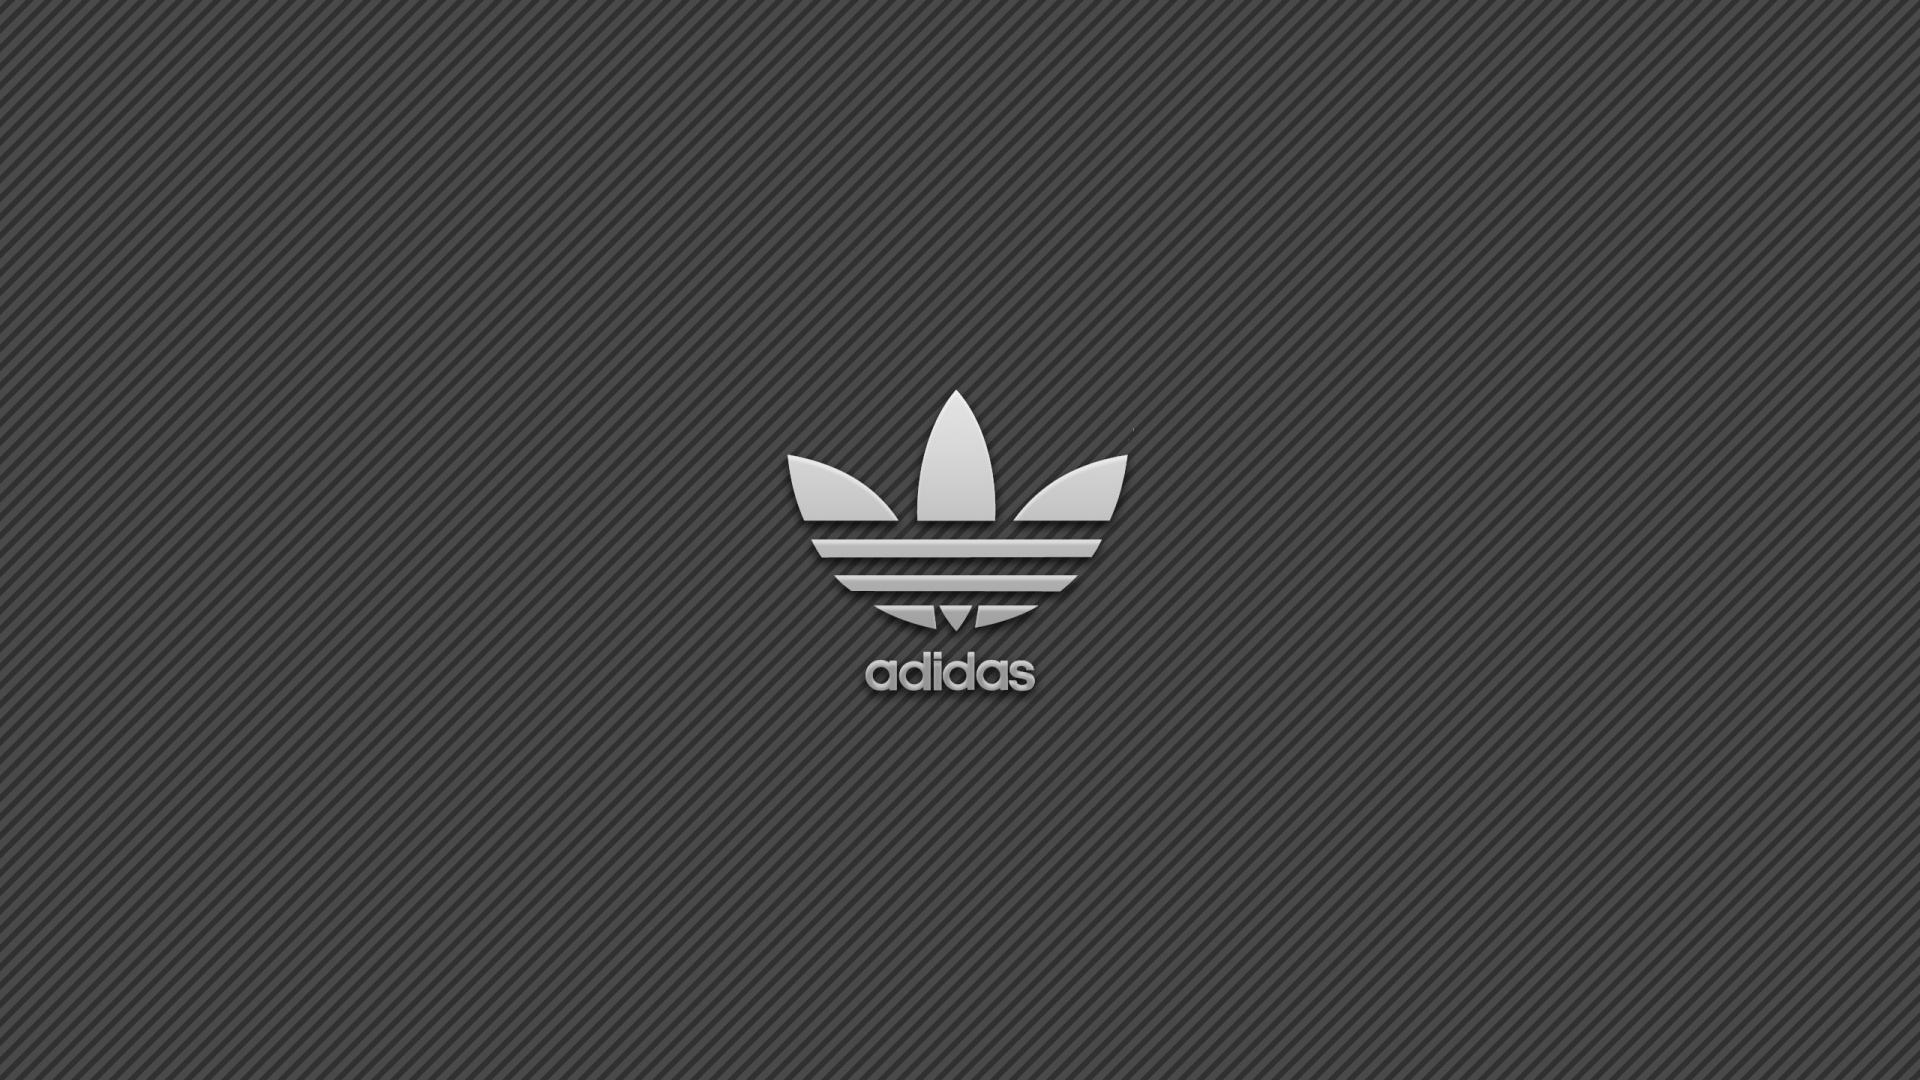 adidas wallpapers download